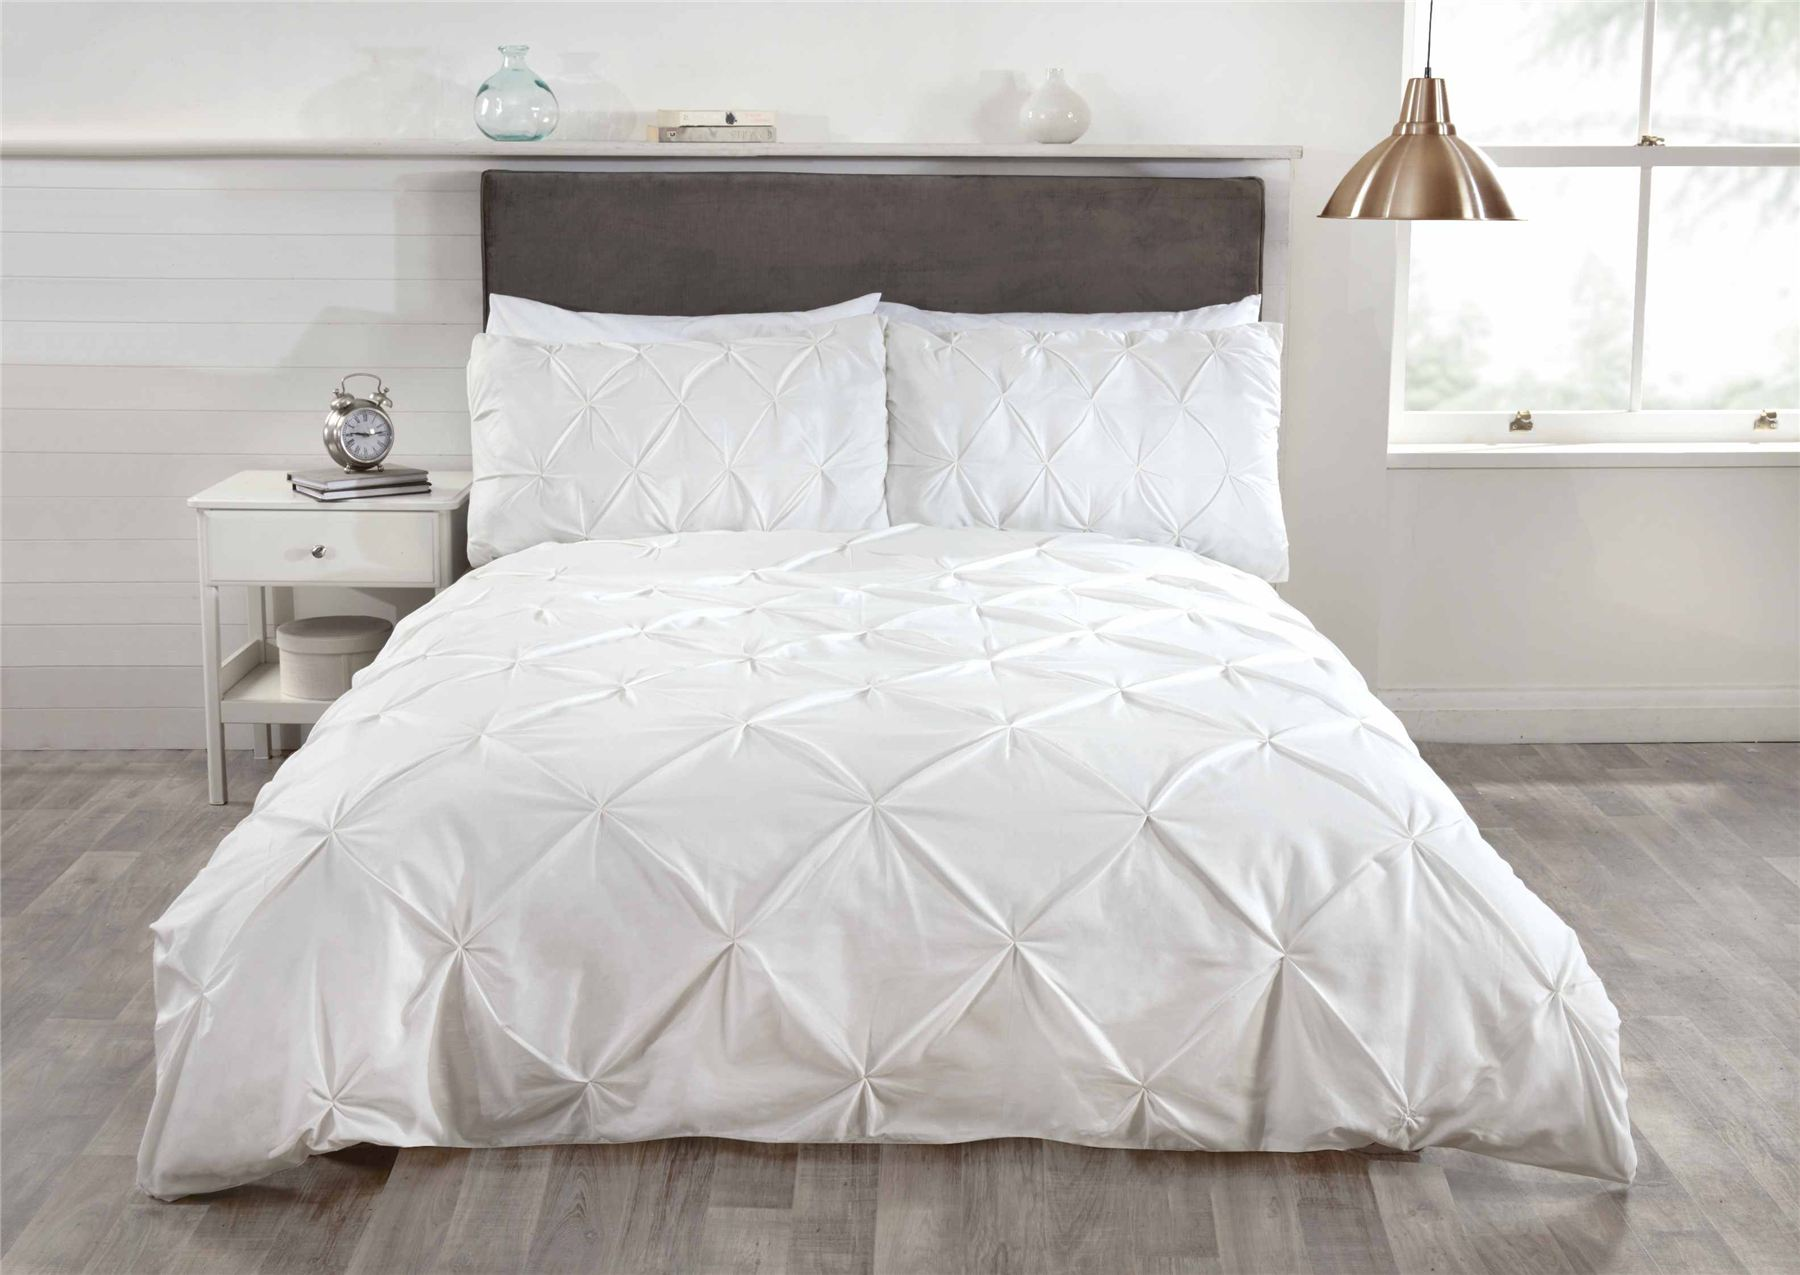 Luxury Duvet Quilt Bedding Bed Set And Pillowcases Pintuck Trim